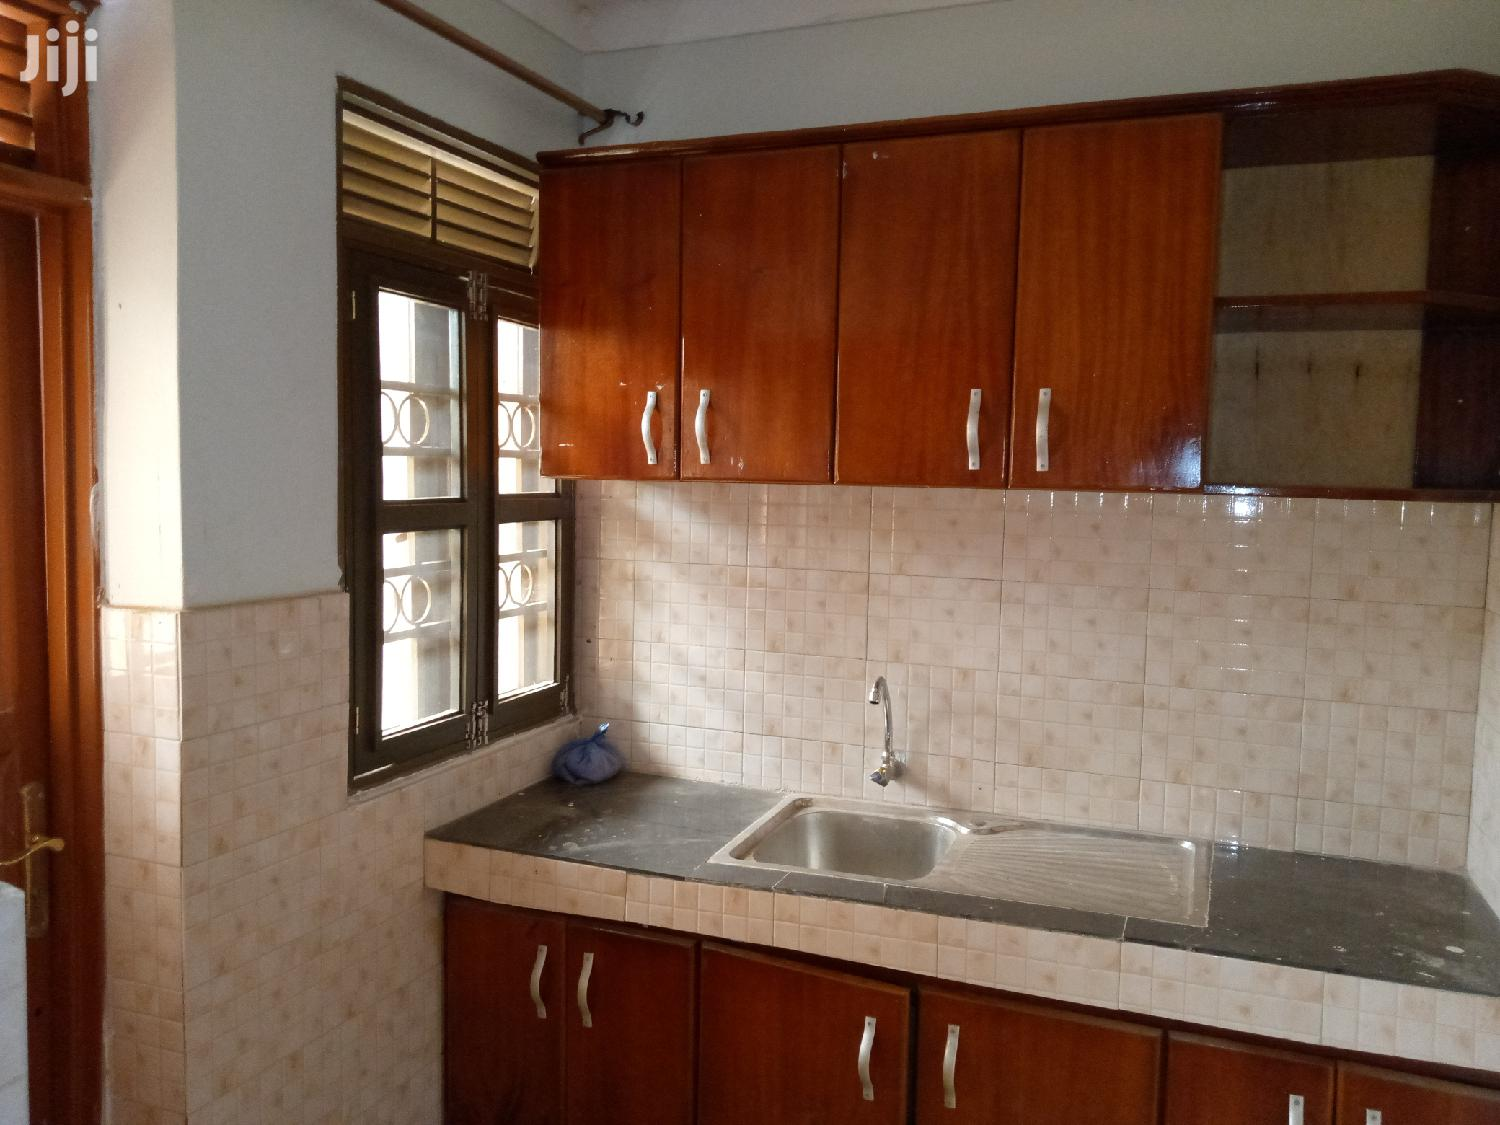 Two Bedroom Apartment for Rent in Kyanja | Houses & Apartments For Rent for sale in Kampala, Central Region, Uganda